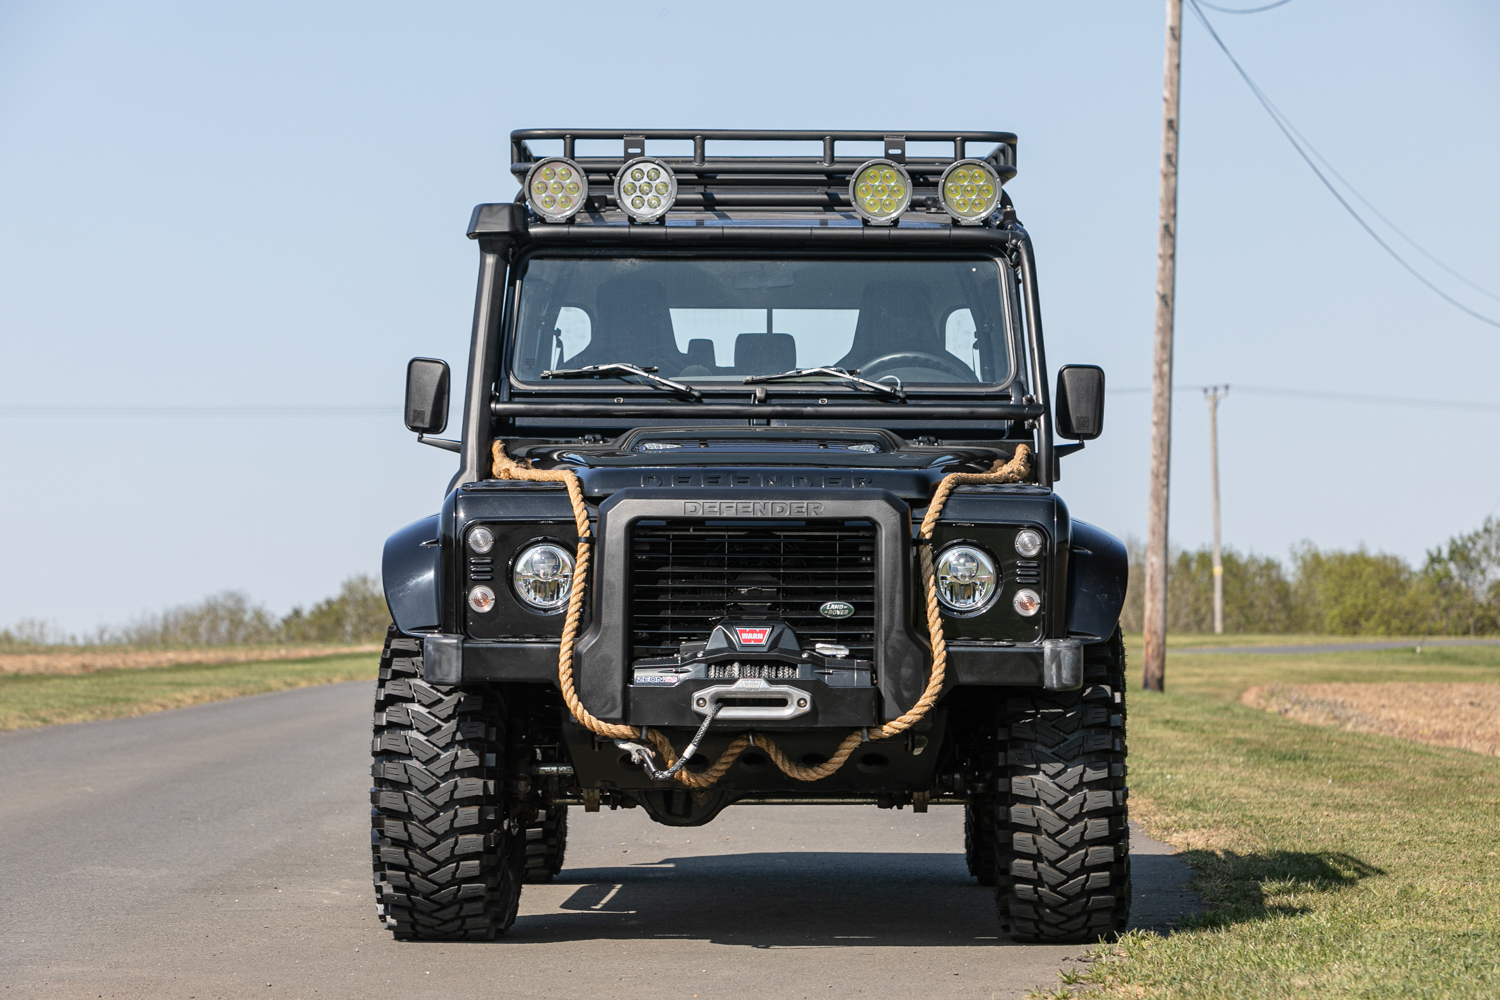 2015 Land Rover Defender 110 SVX 'Spectre' JB24 - Image 7 of 26